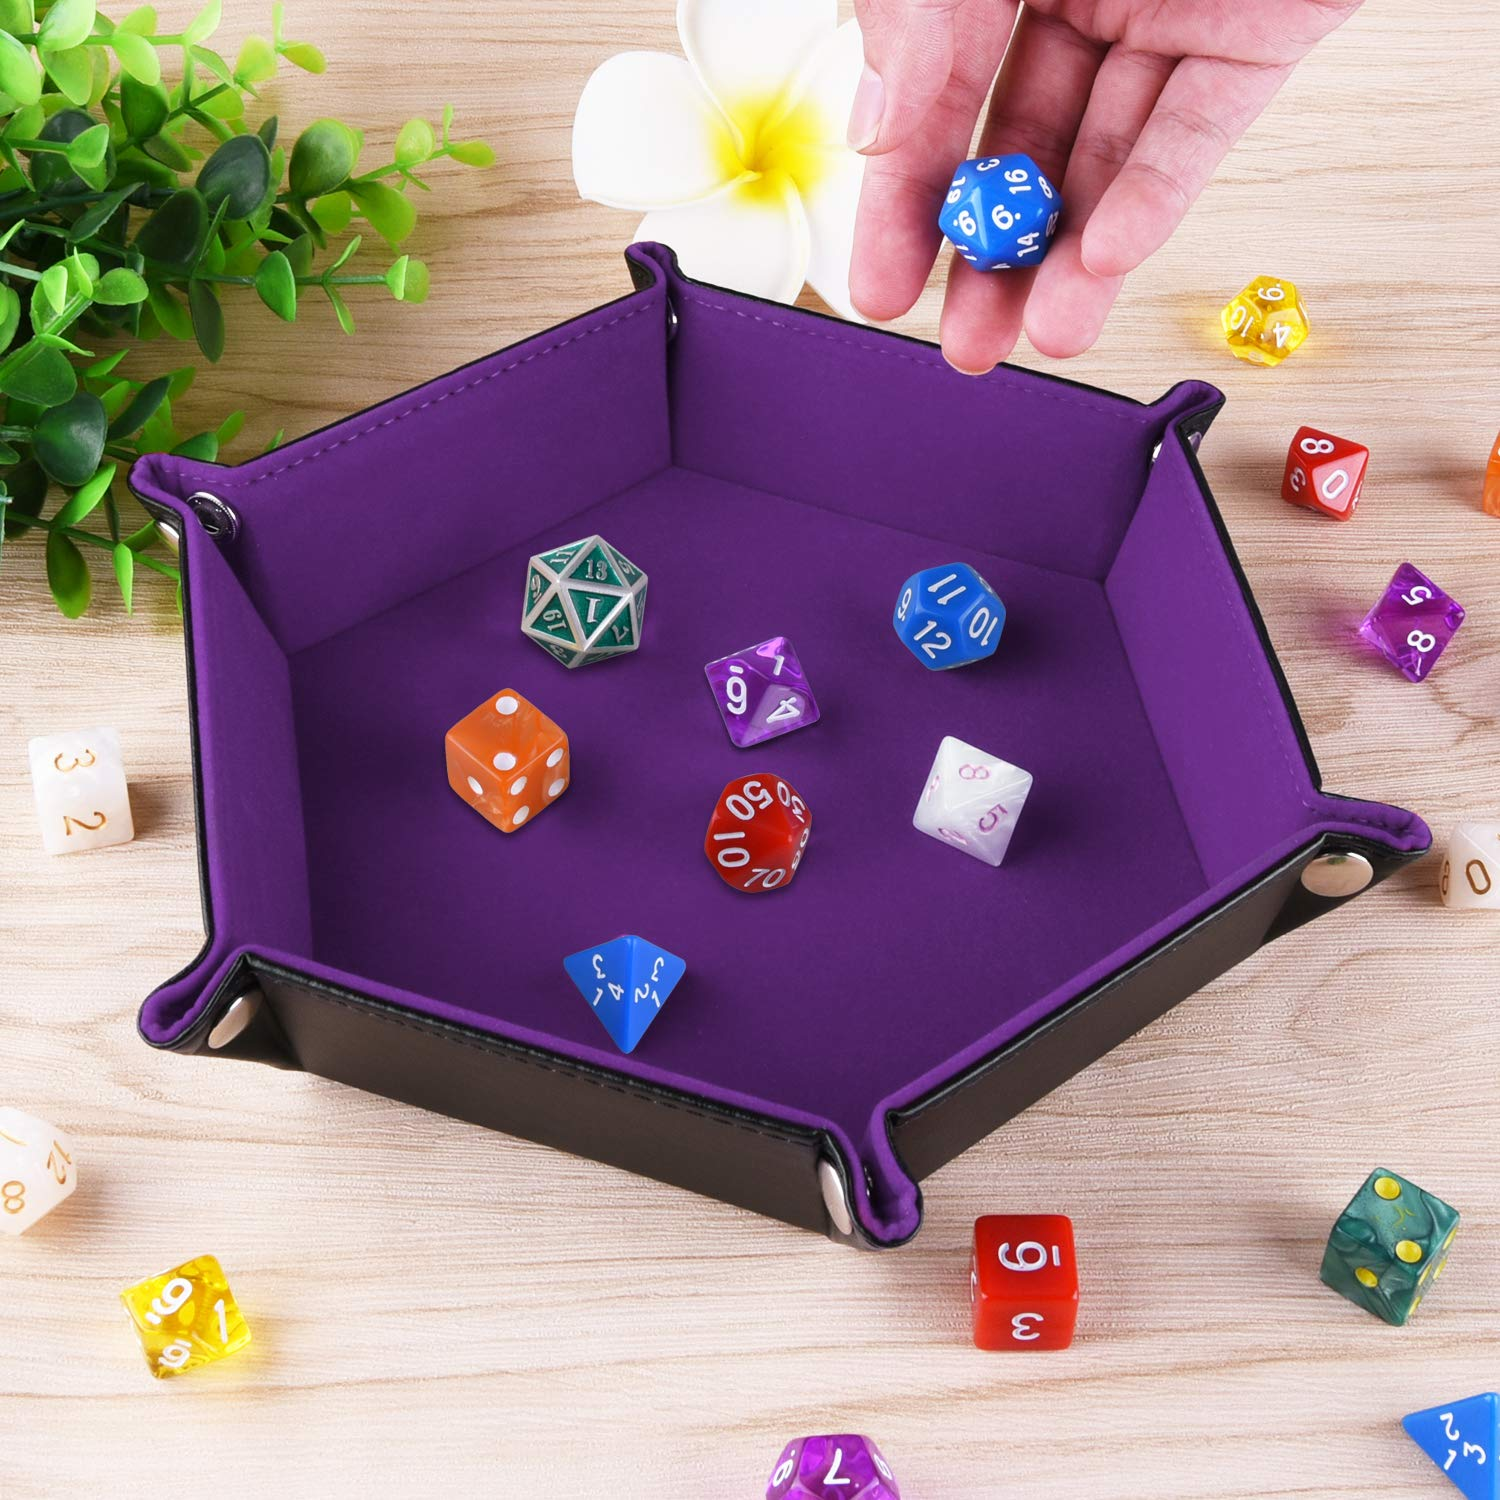 Folding Hexagon PU Leather and Dark Violet Velvet Dice Holder for Dungeons and Dragons RPG Dice Gaming D/&D and Other Table Games SIQUK Double Sided Dice Tray